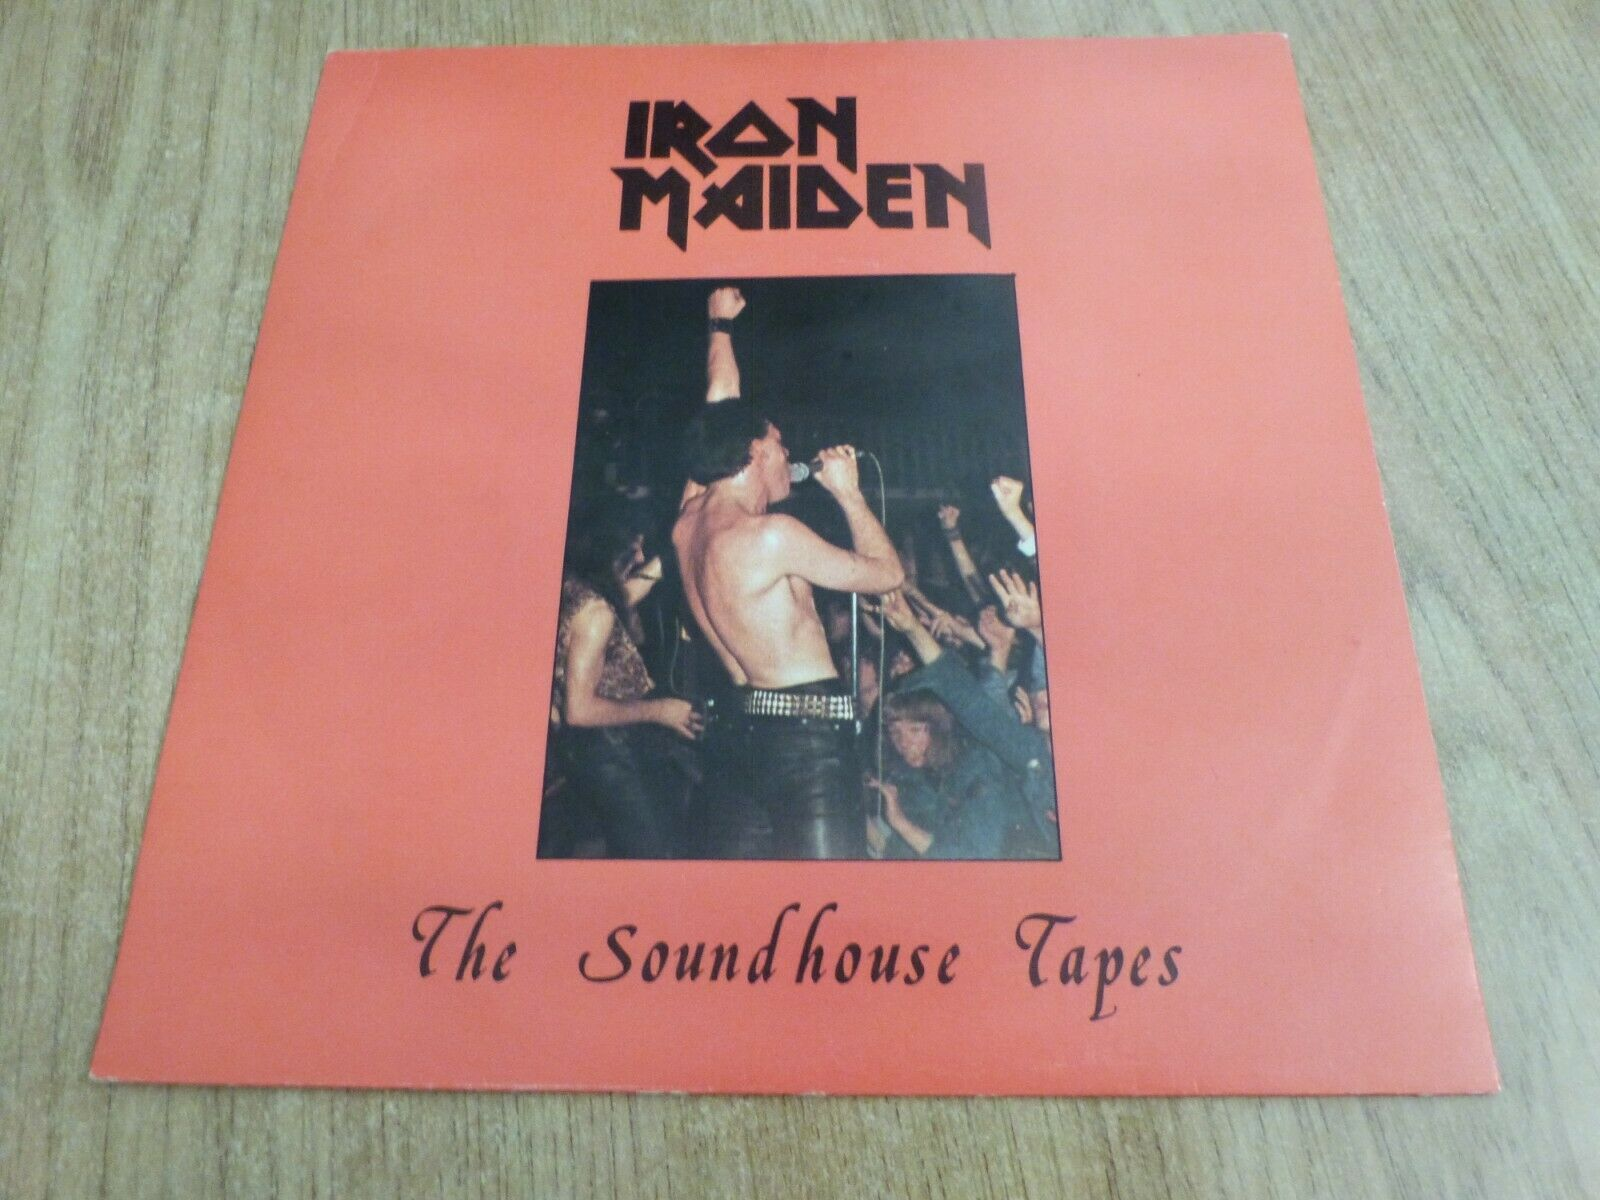 IRON MAIDEN - SOUNDHOUSE TAPES - UK ORIGINAL - SEE DESCRIPTION - VERY GOOD++